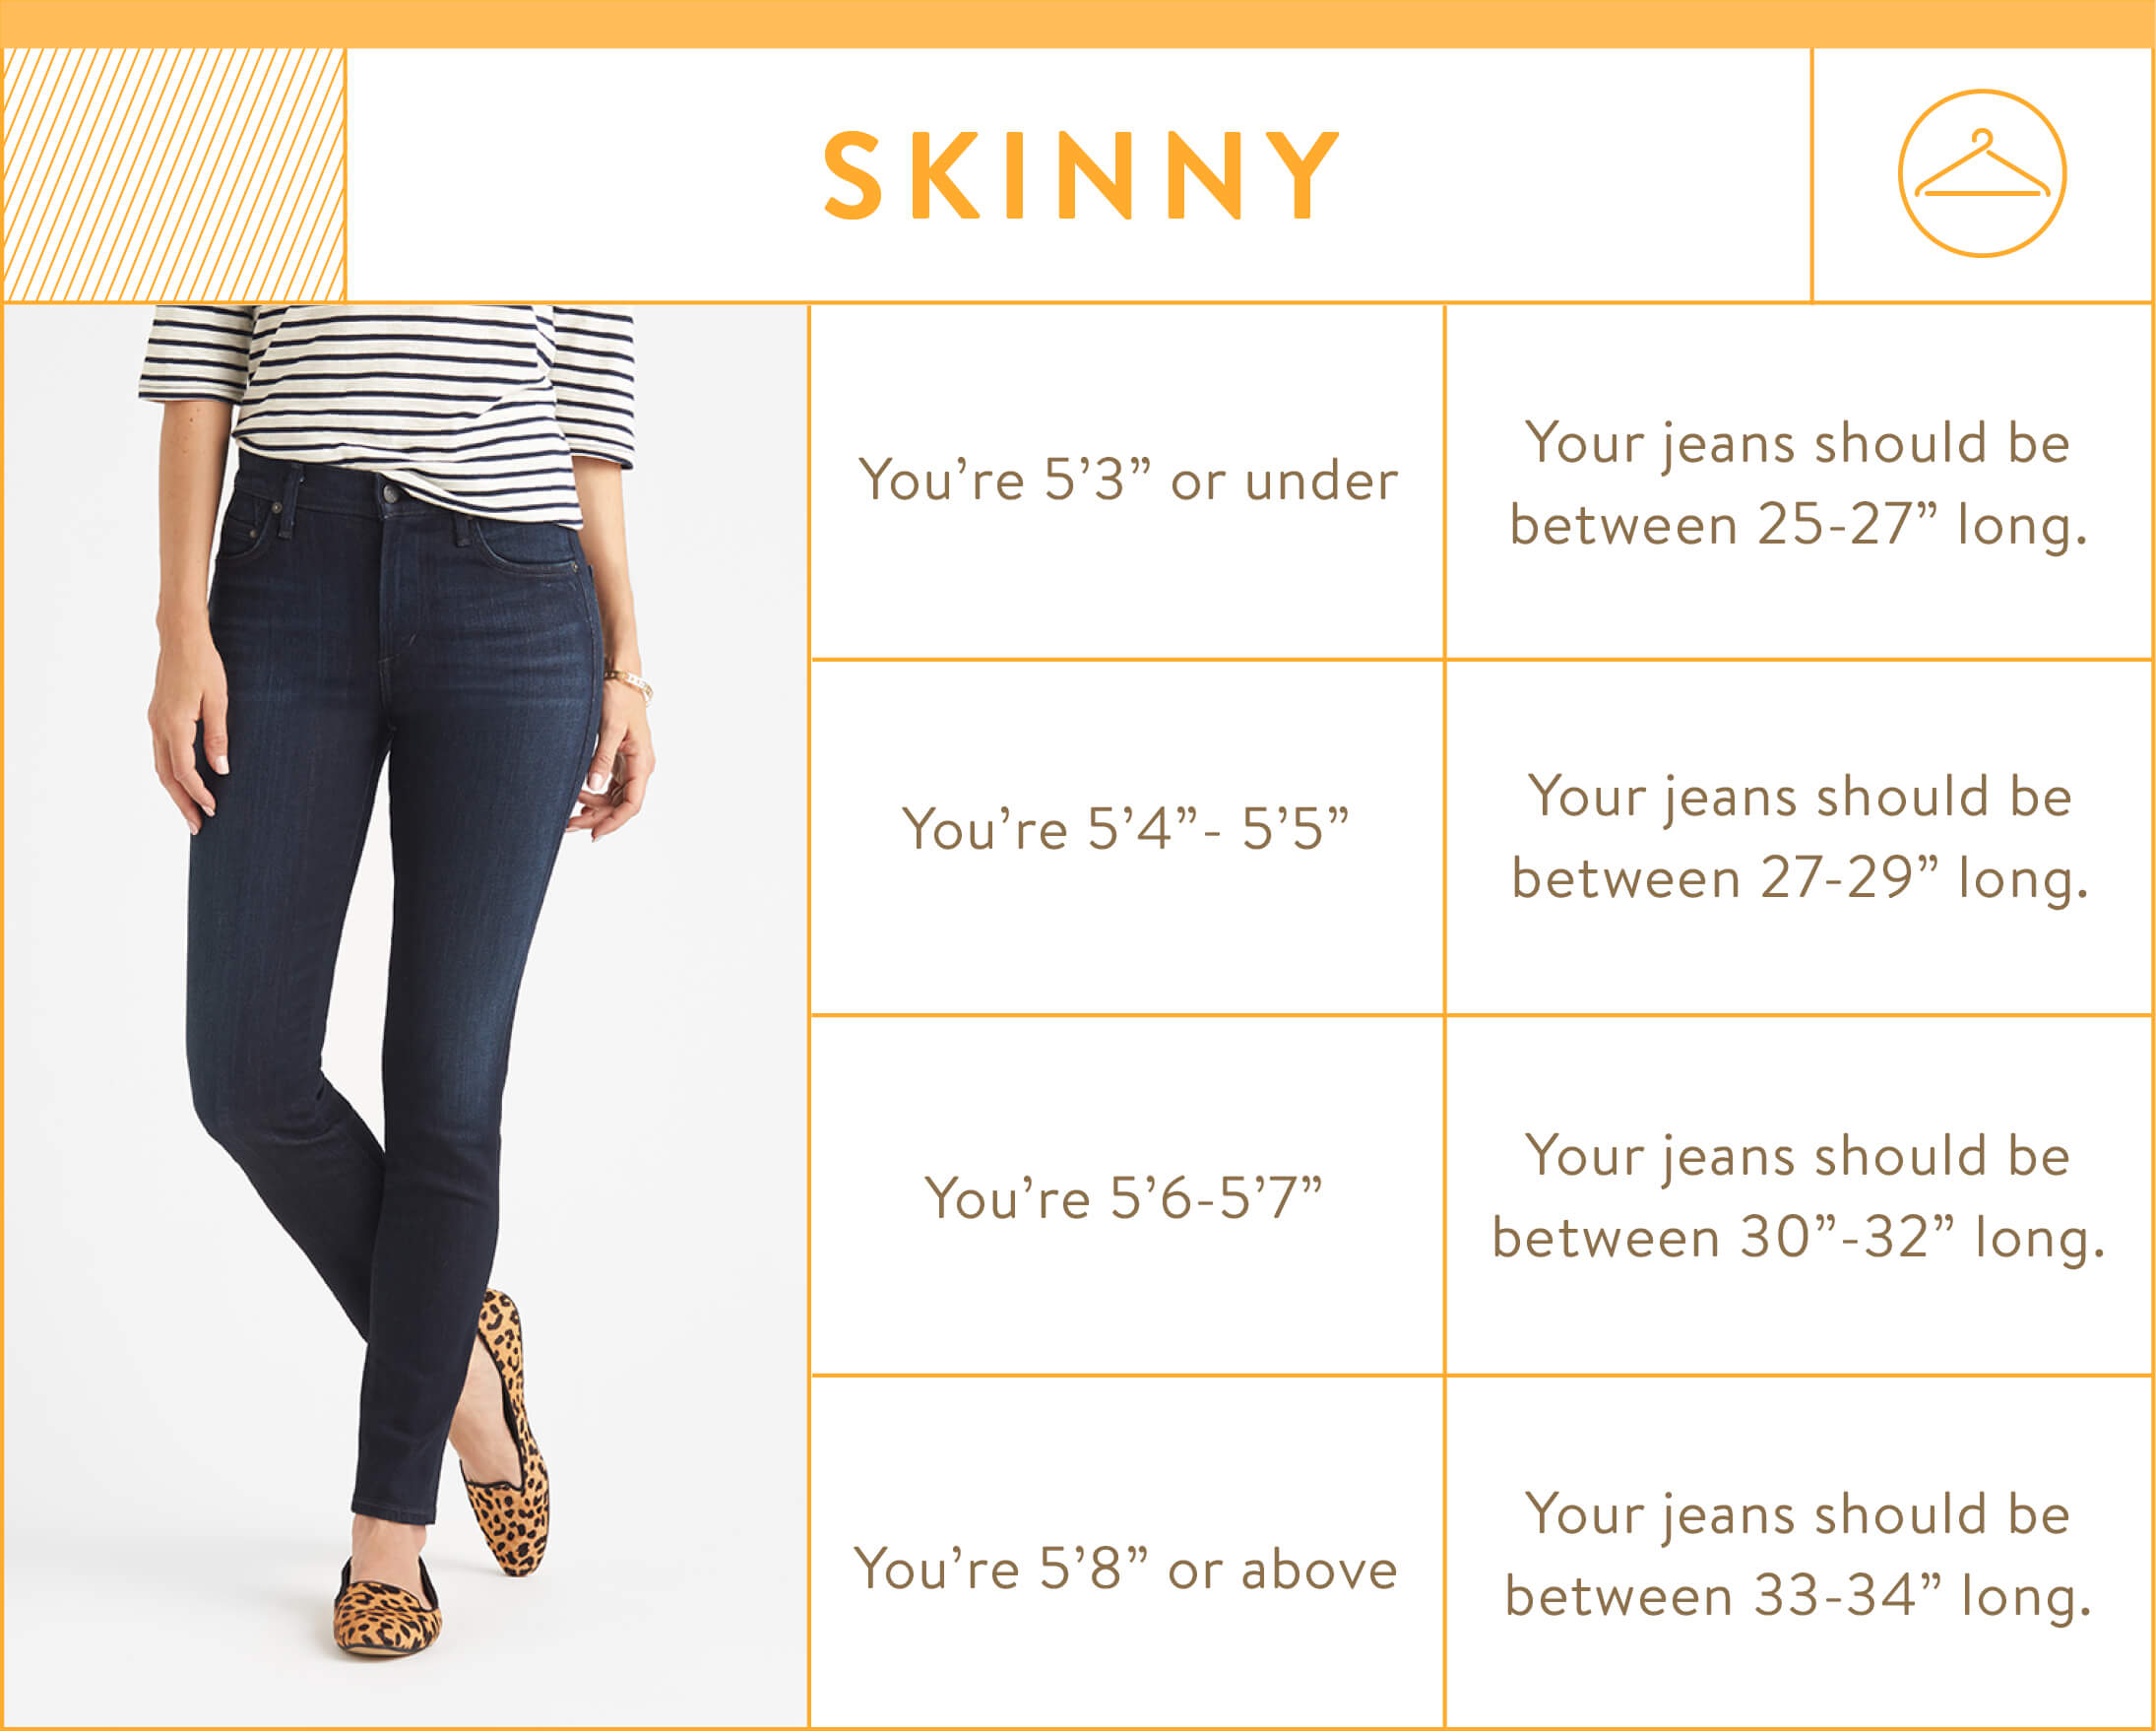 The measurements 7,8, or inches are the height of the front rise of the jean and where they sit on your tummy. Everyone has a unique rise whatever your size or shape. So when you have your jeans on measure from the crotch seam of your jeans up to your belly button. This is .